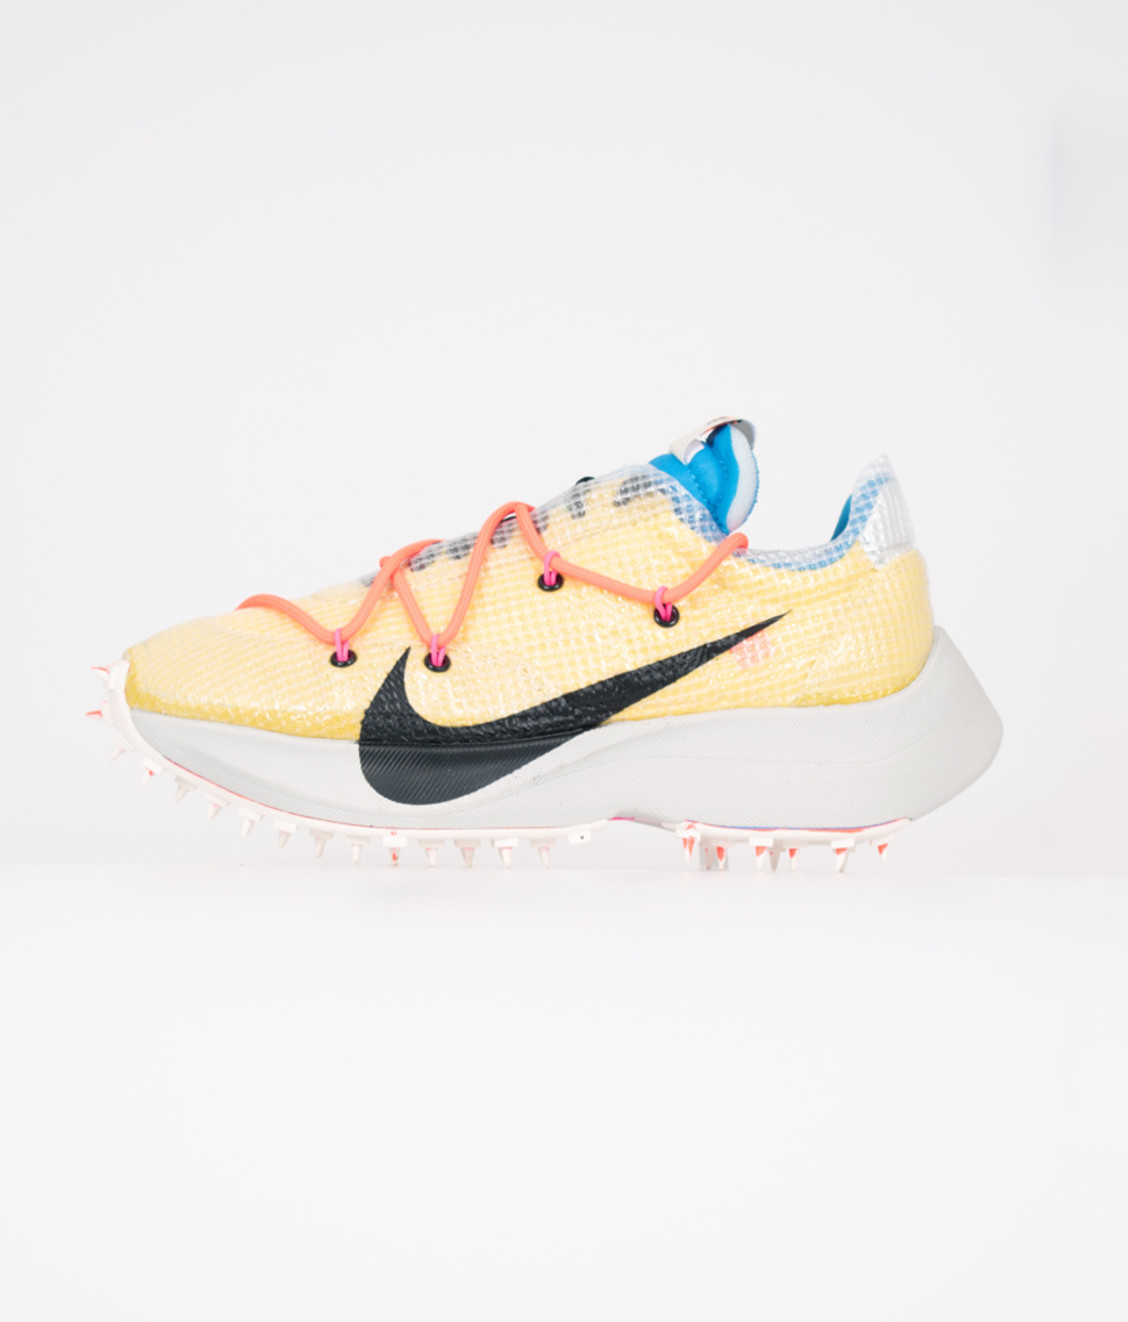 Nike Nike X Off White Vapor Street Tour Yellow